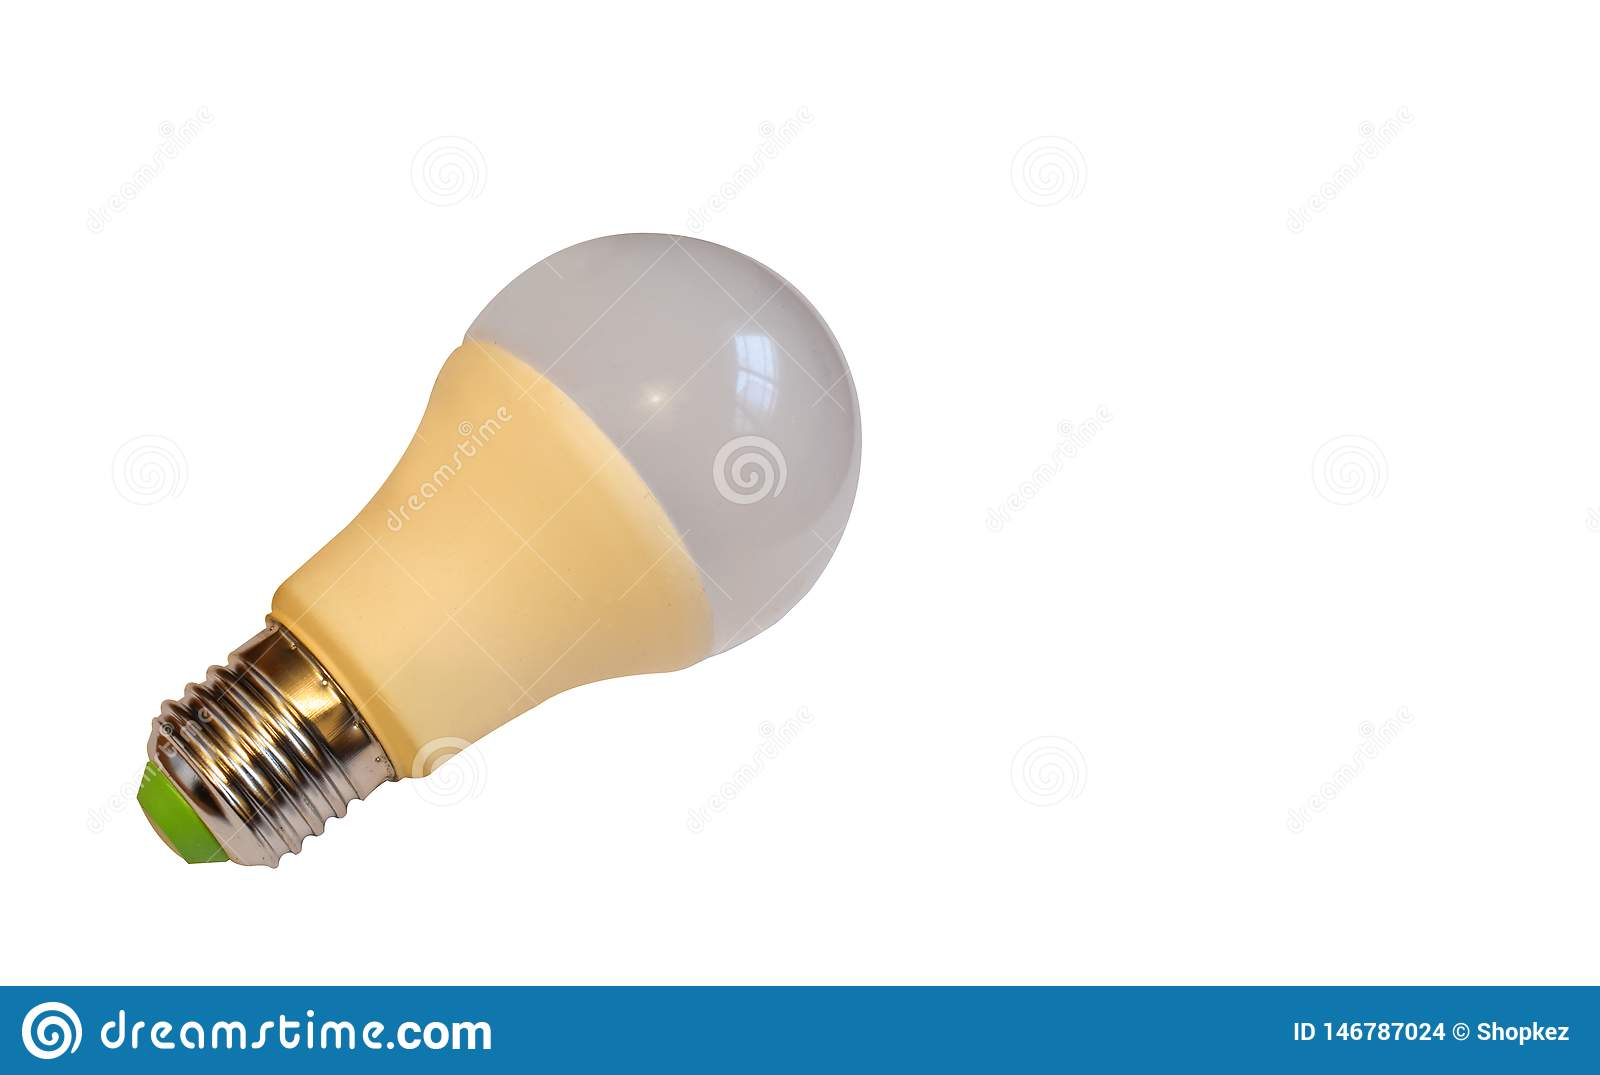 LED, New technology light bulb isolated on white background, Energy super saving electric lamp is good for environment. Realistic